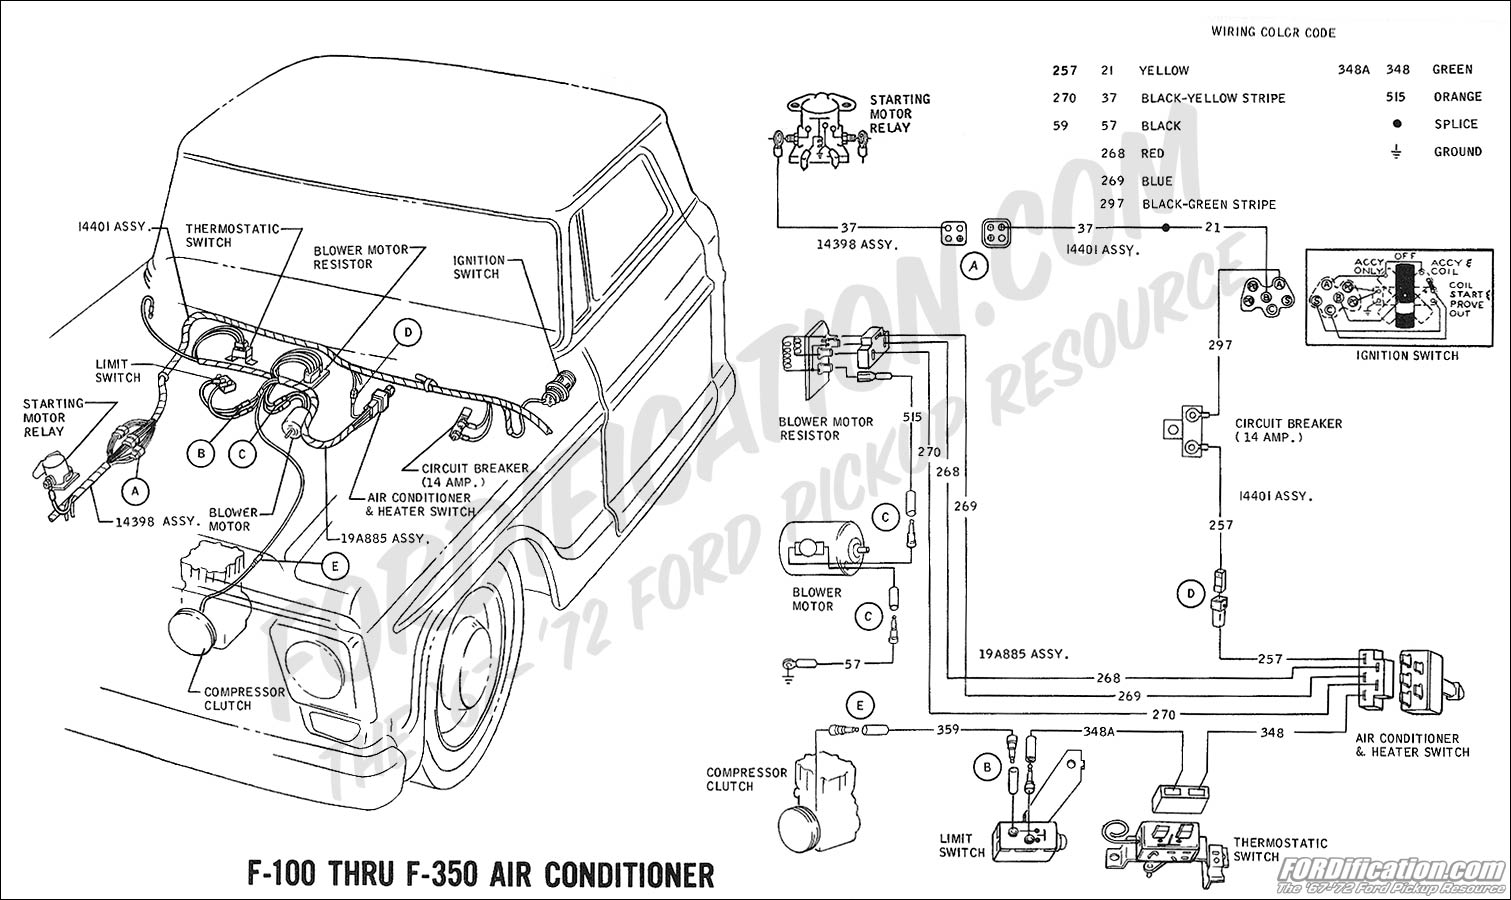 wiring_69ac 1999 ford f 150 radio wiring diagram chevy truck wiring diagram 1999 cadillac deville radio wiring diagram at eliteediting.co